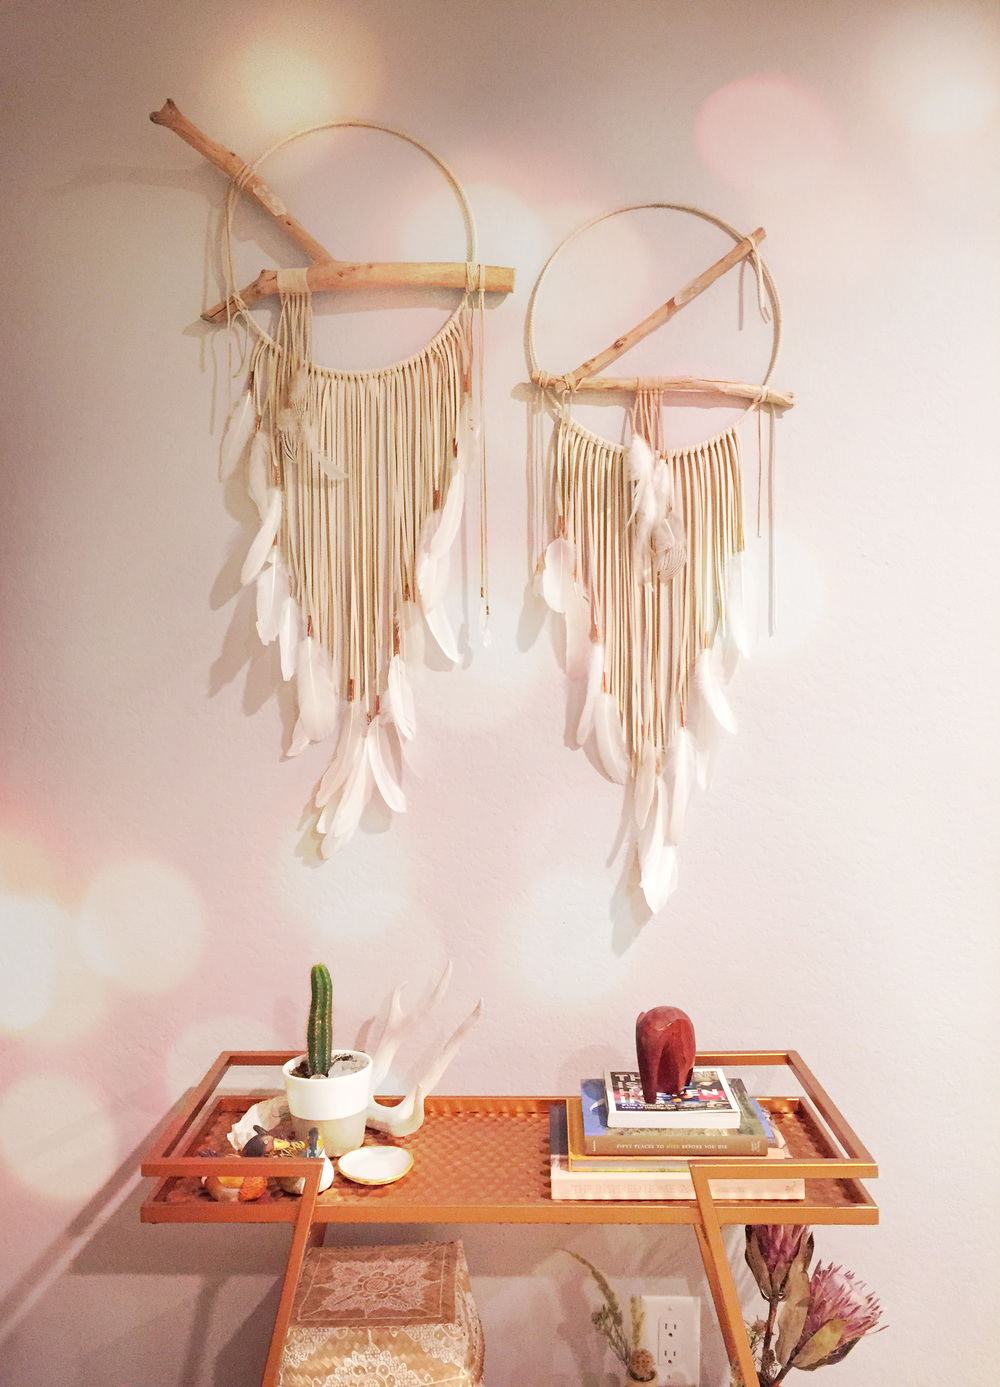 Chelsea Briganti -   I made these dream catchers as part of our wedding. They now live in our home and are a constant reminder of that magical day. It was a dream come true.